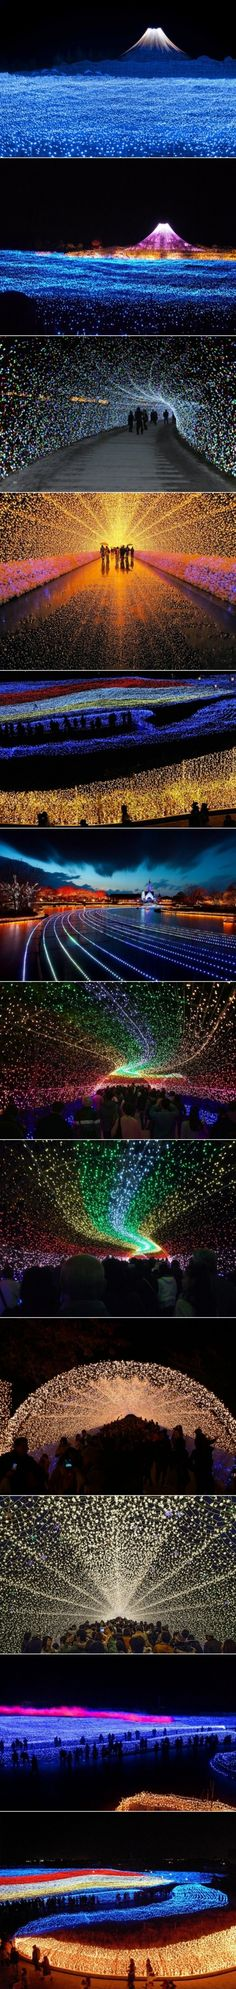 #WhereintheWorld - Japan's Winter Lights Festival